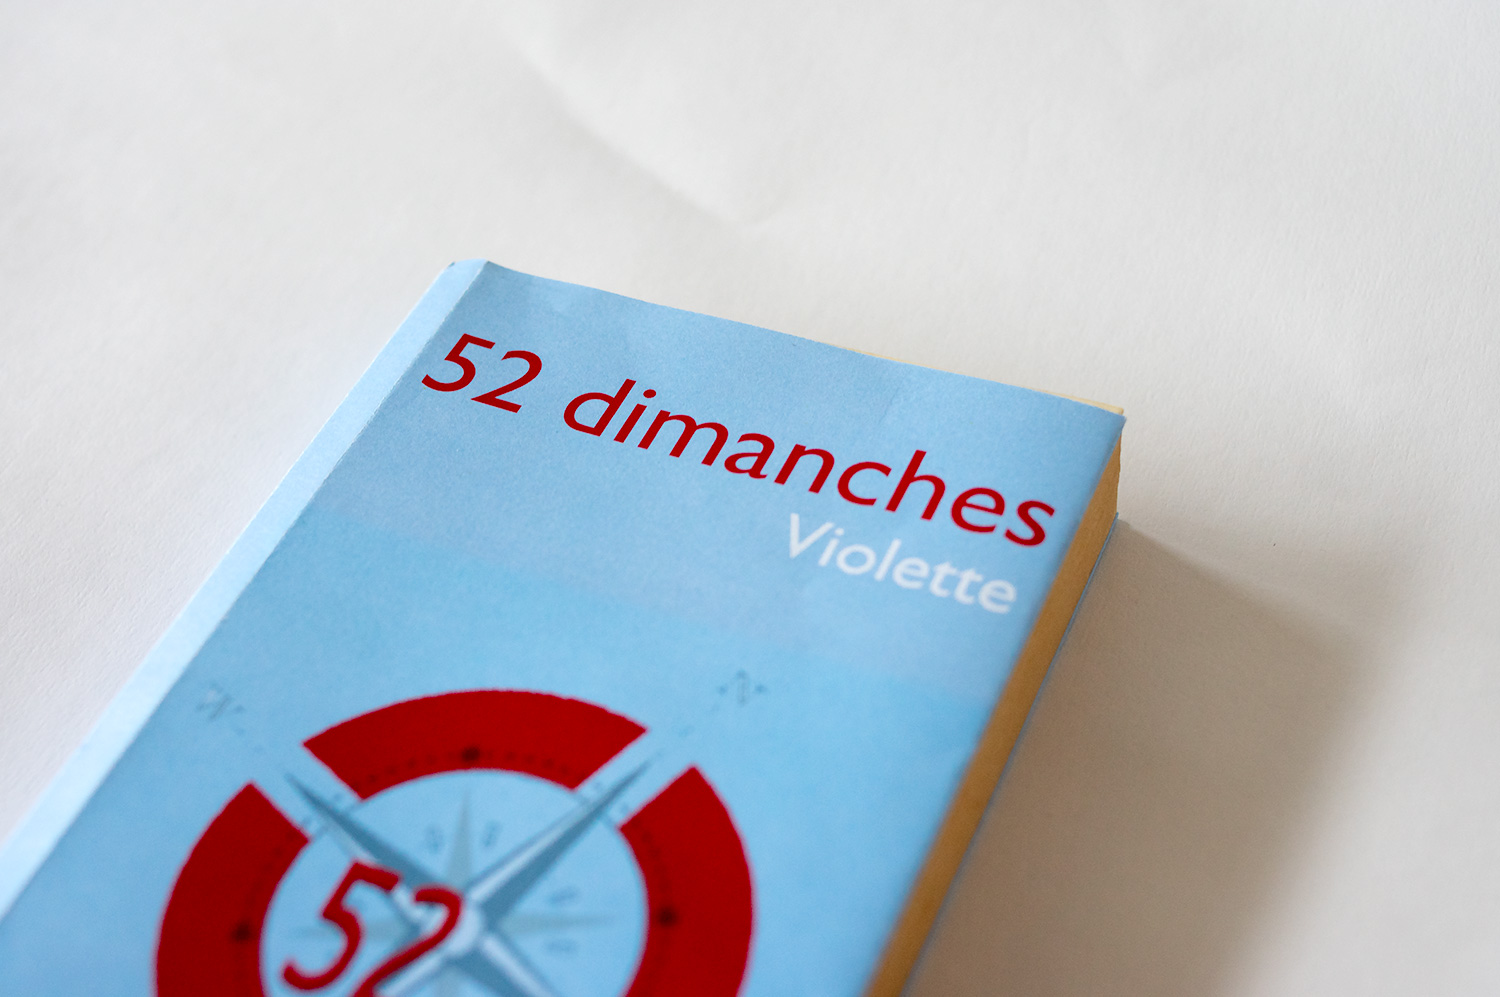 52 dimanches